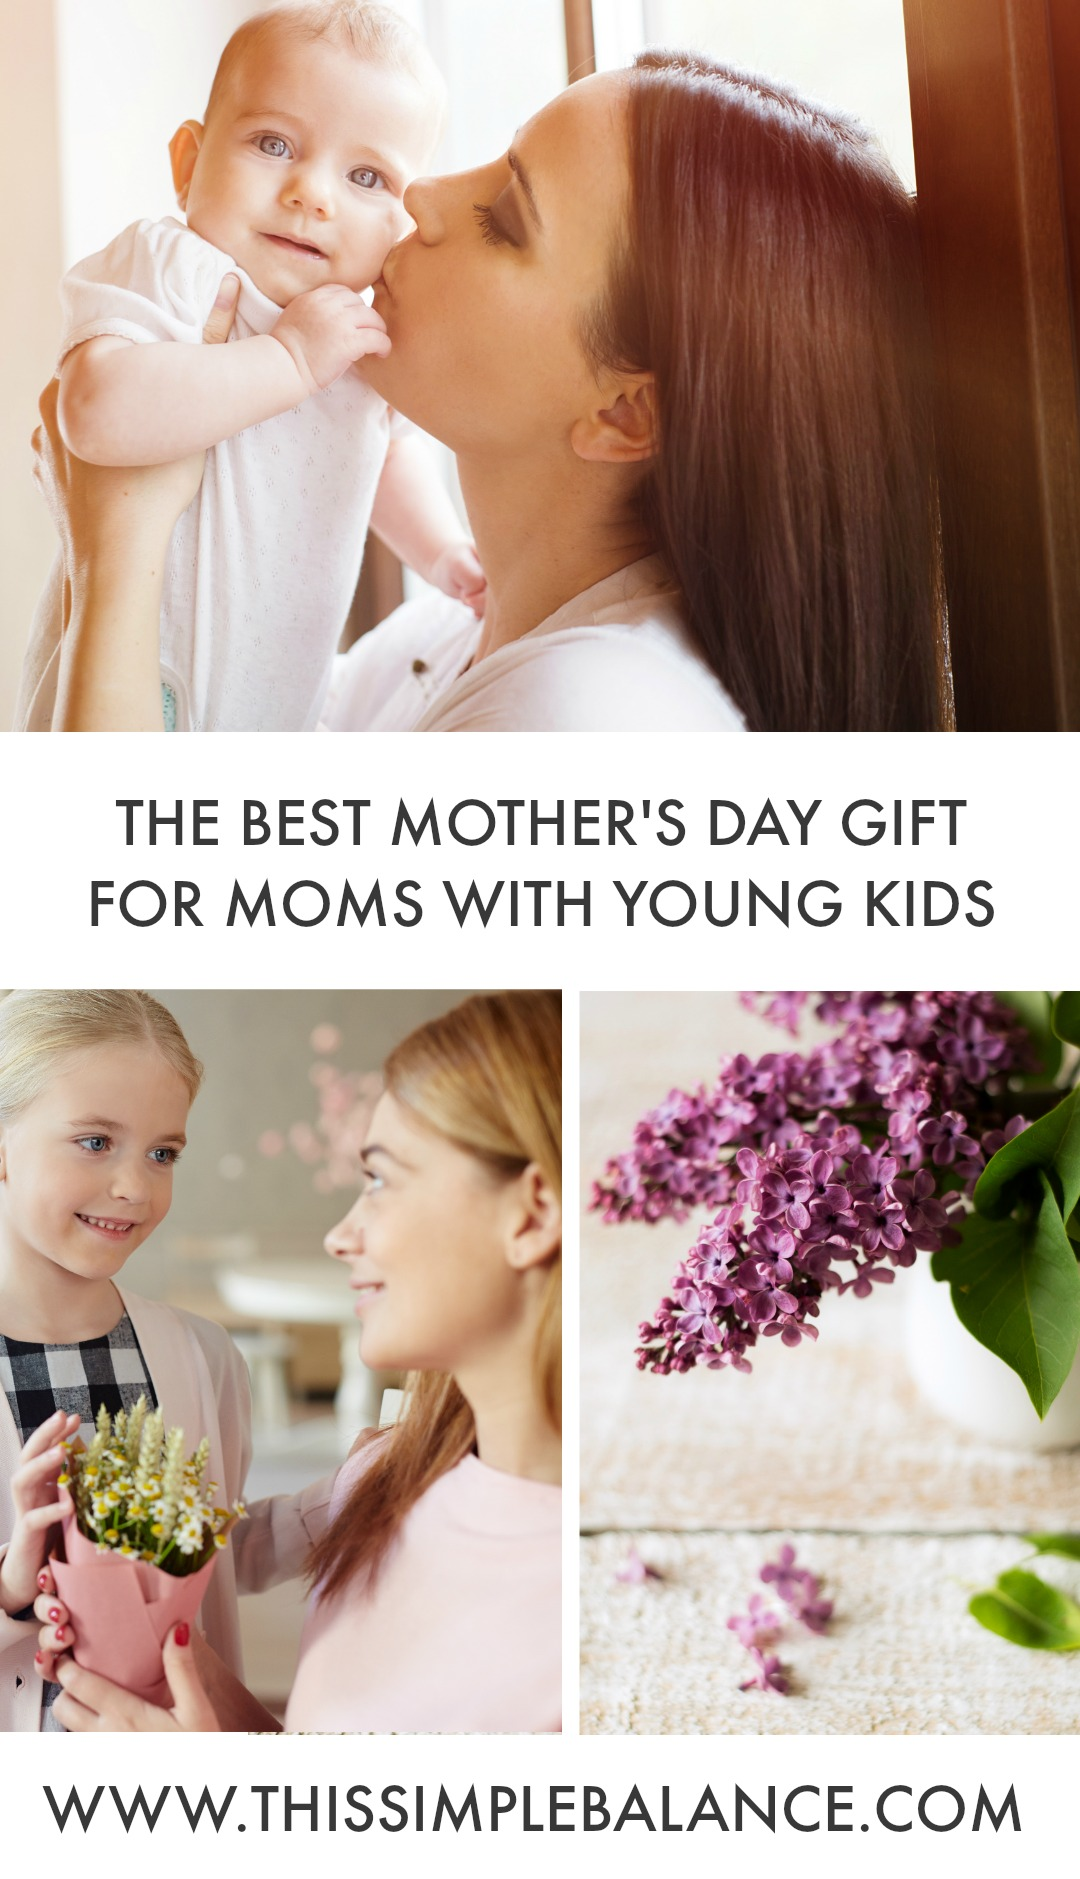 The Best Mother's Day Gift for Moms with Young Kids (that she probably isn't asking for) #mothersday